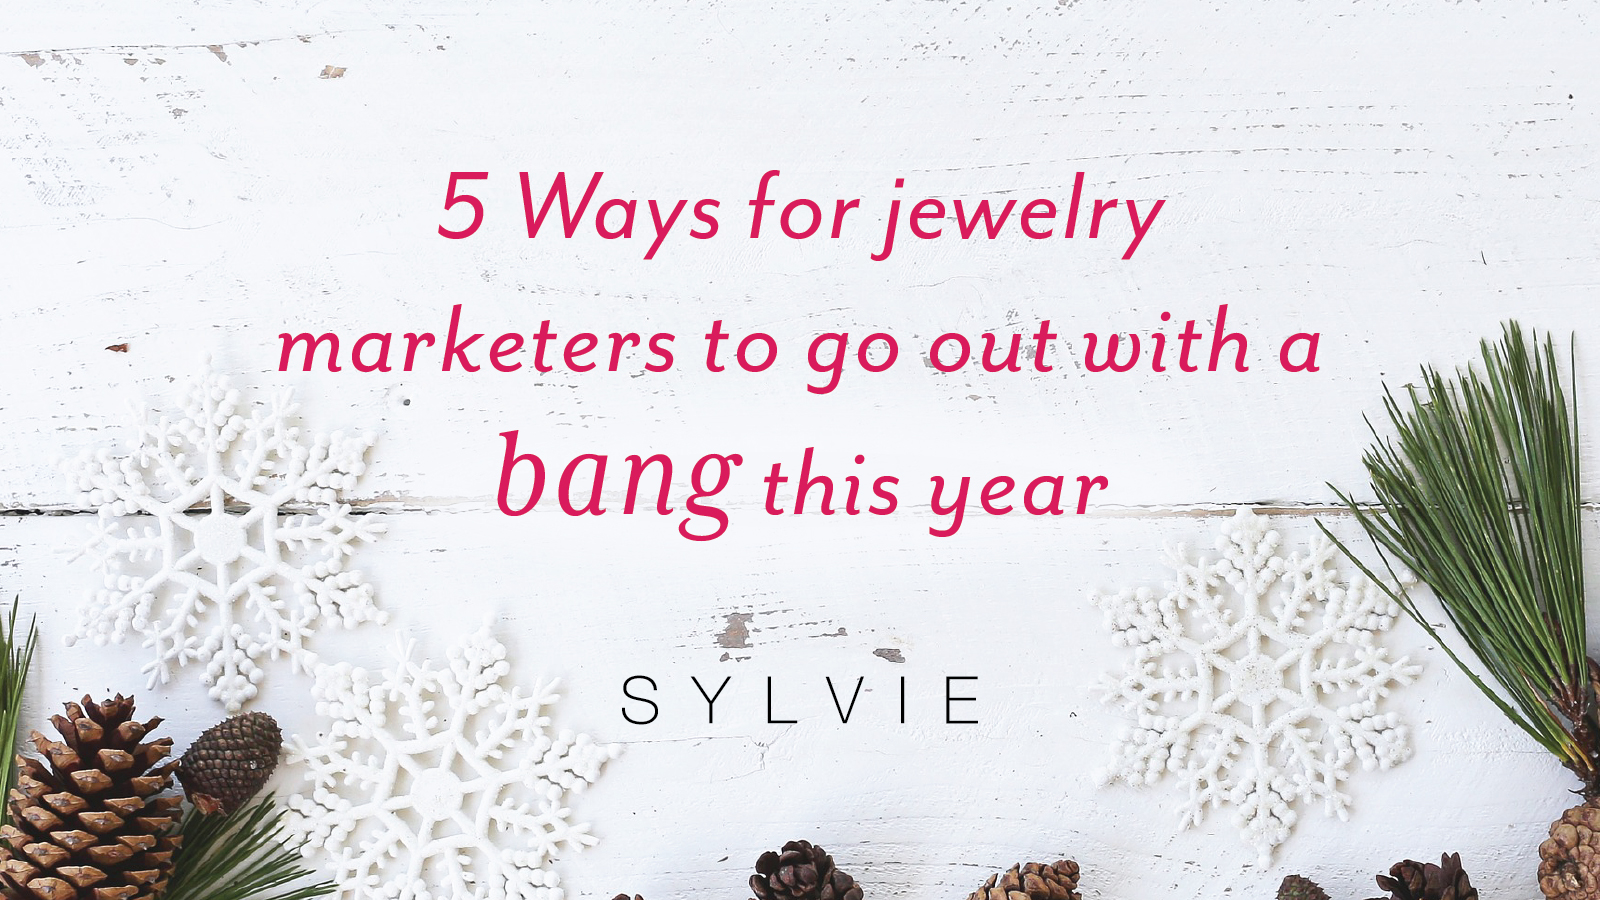 Ways for jewelry marketers to go out bang - Sylvie